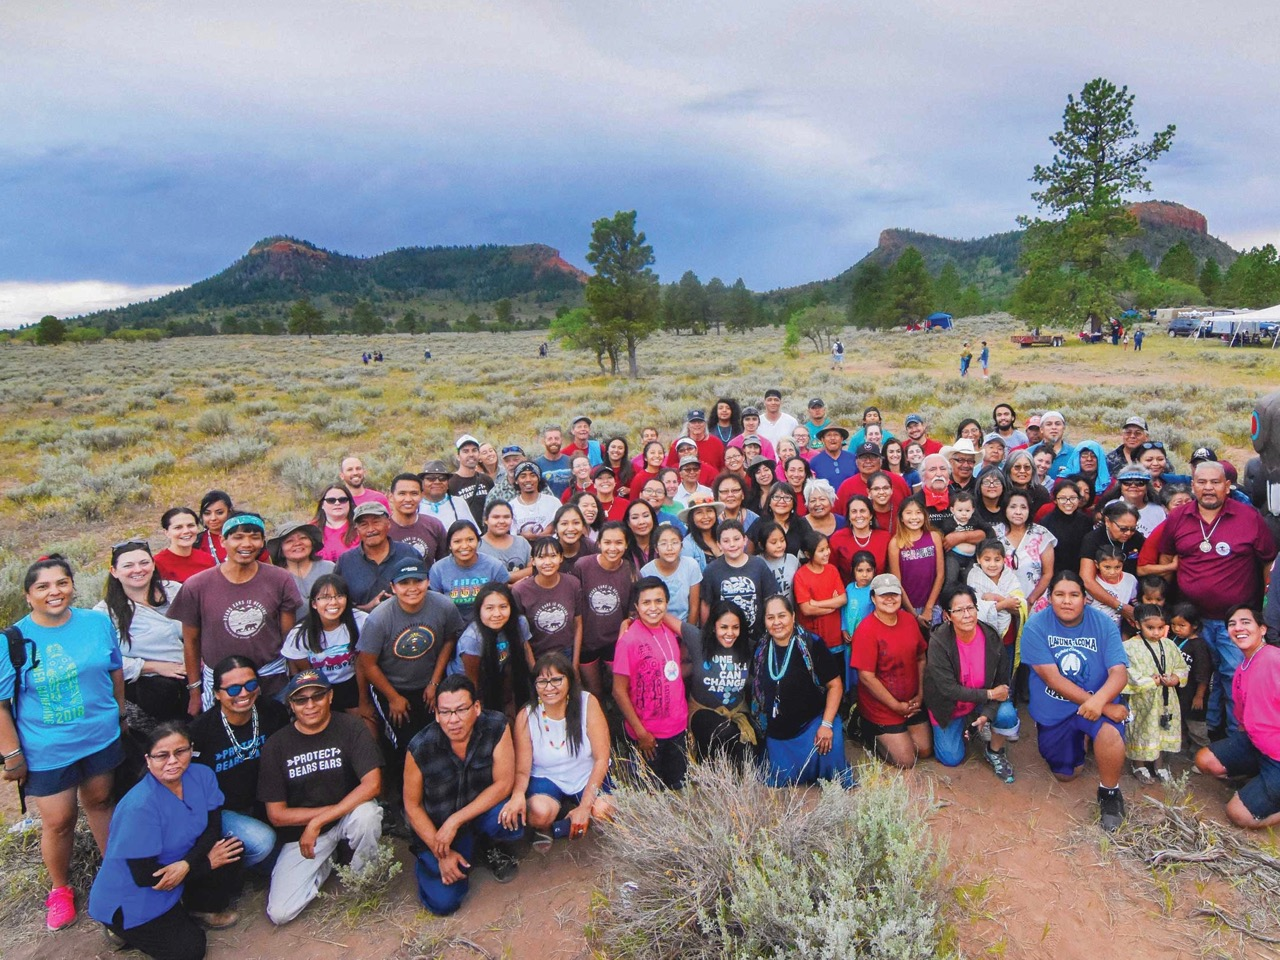 Tribes meet for annual summer gathering at Bears Ears National Monument